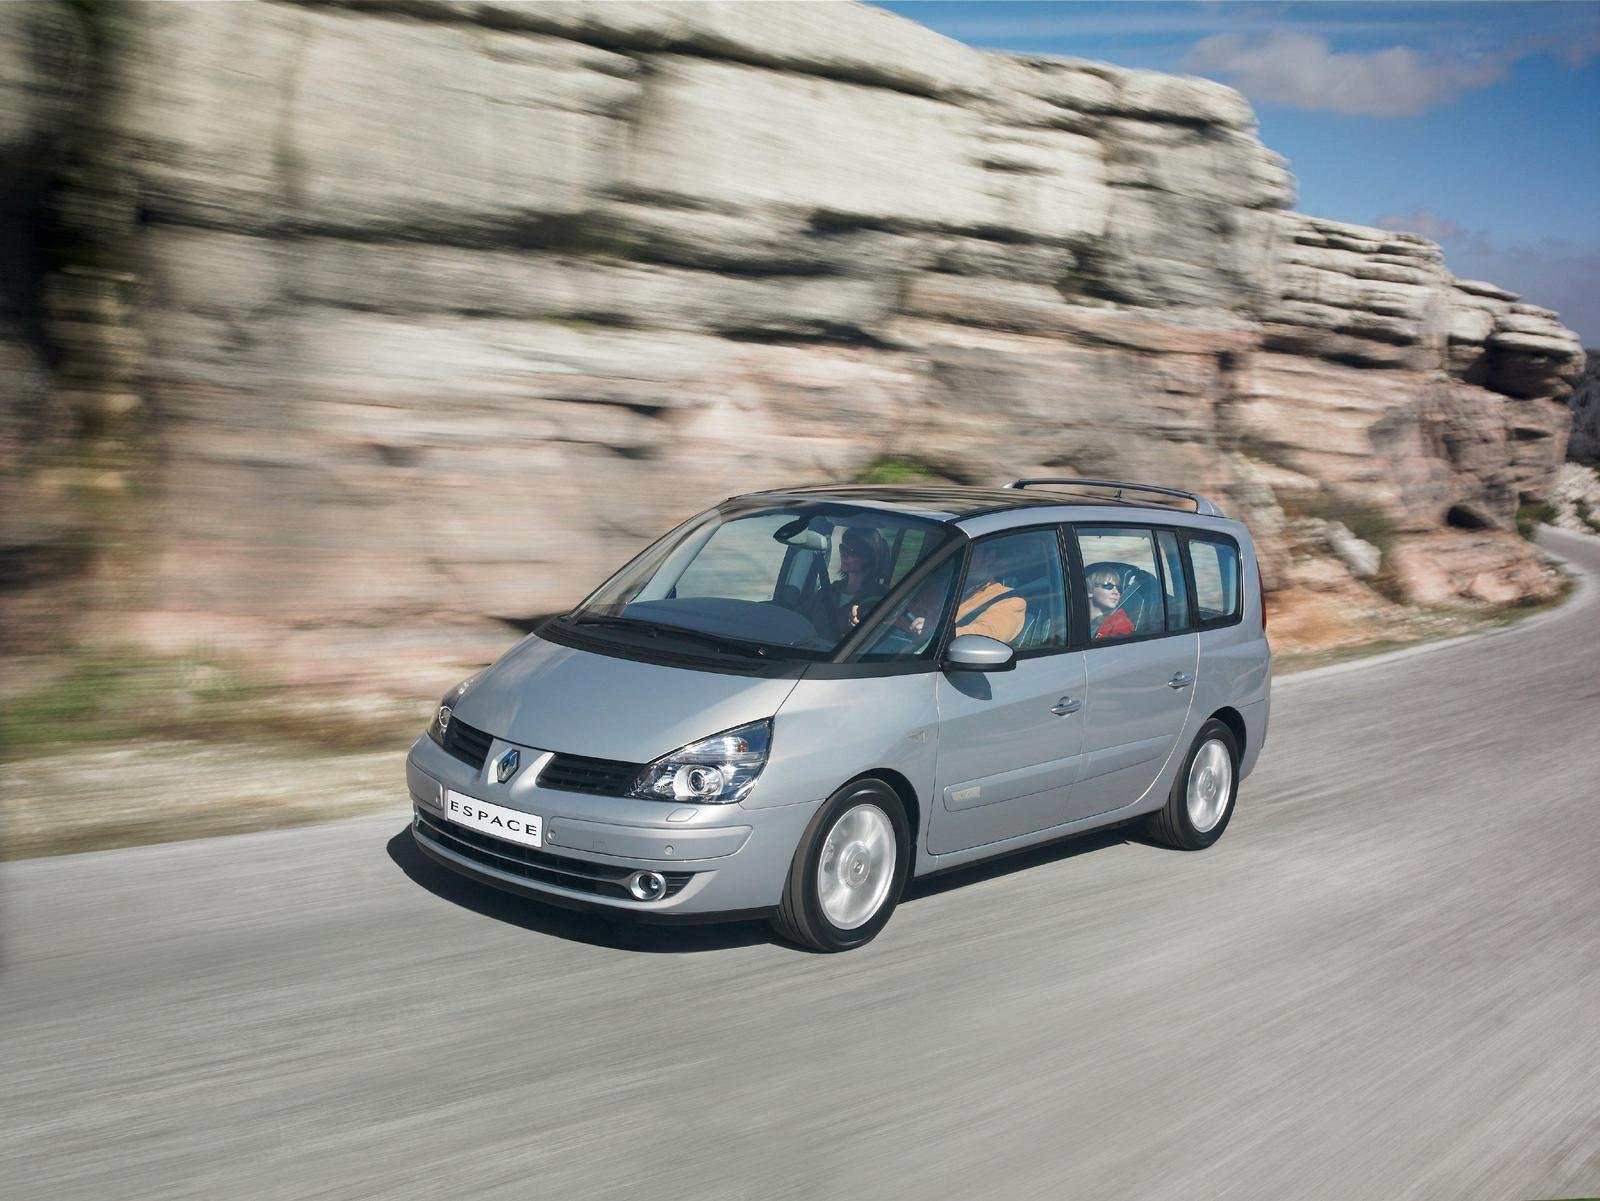 2006 renault espace iv picture 47389 car review top speed. Black Bedroom Furniture Sets. Home Design Ideas